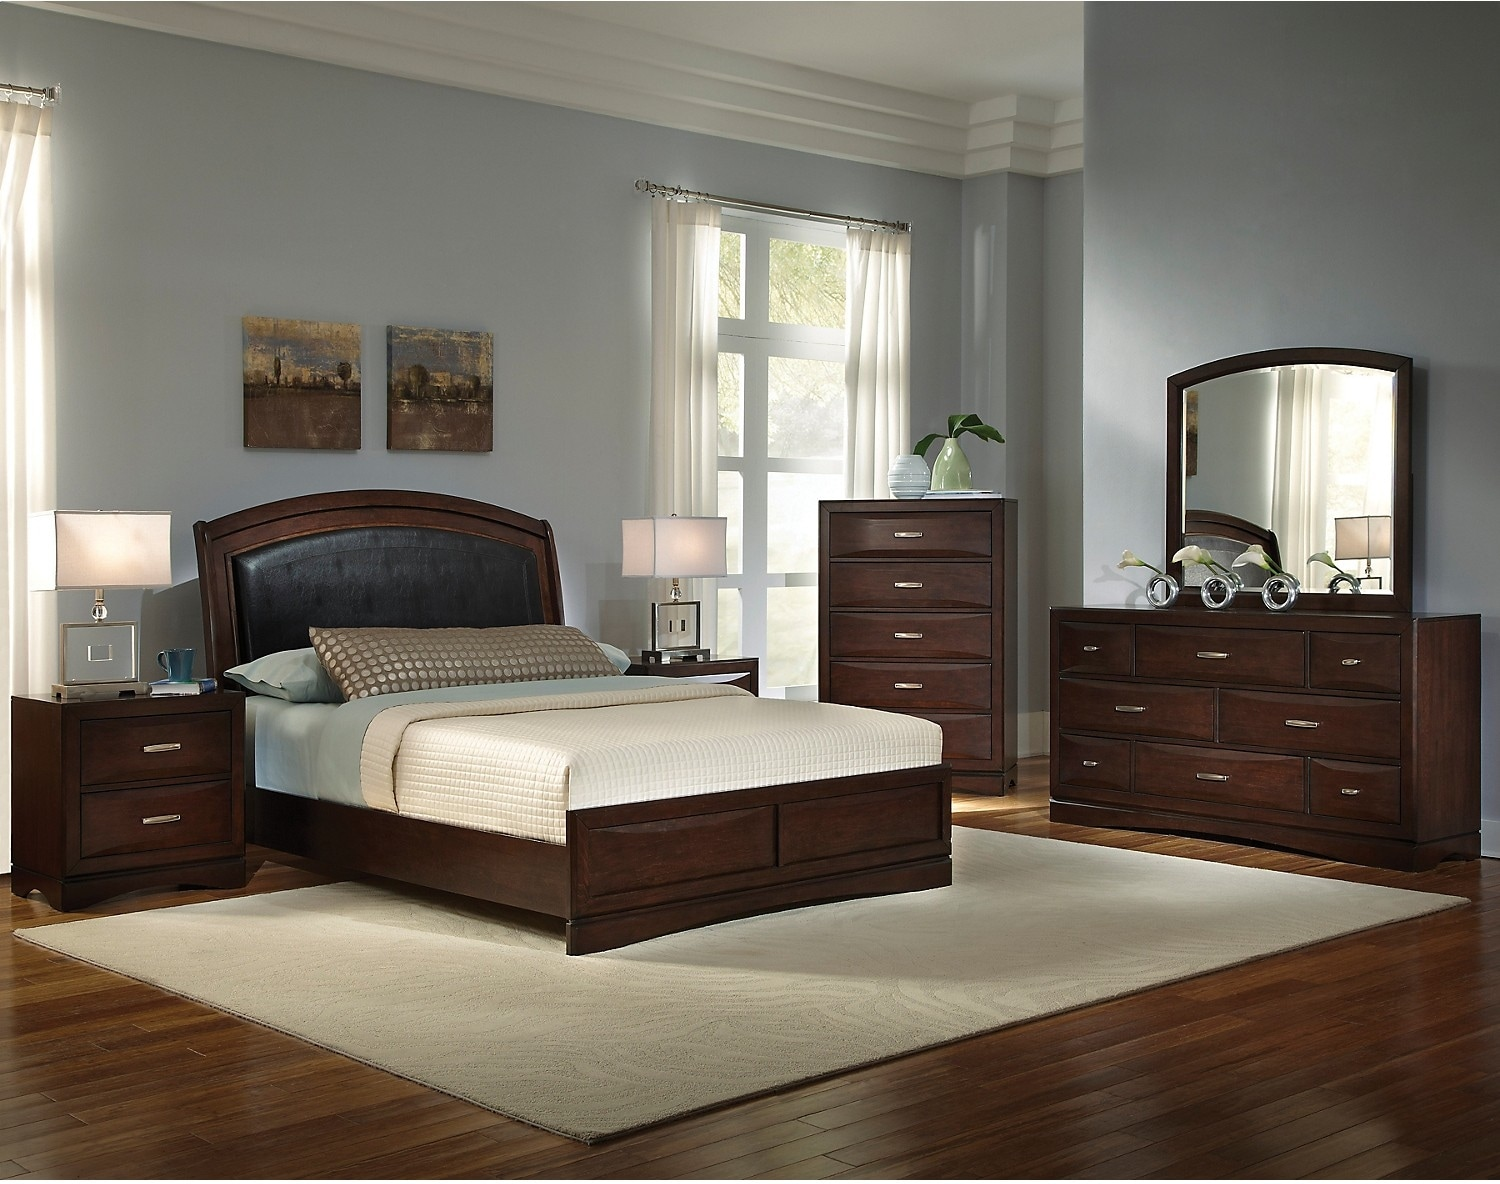 Beverly 8 piece queen bedroom set the brick for Furniture bedroom furniture